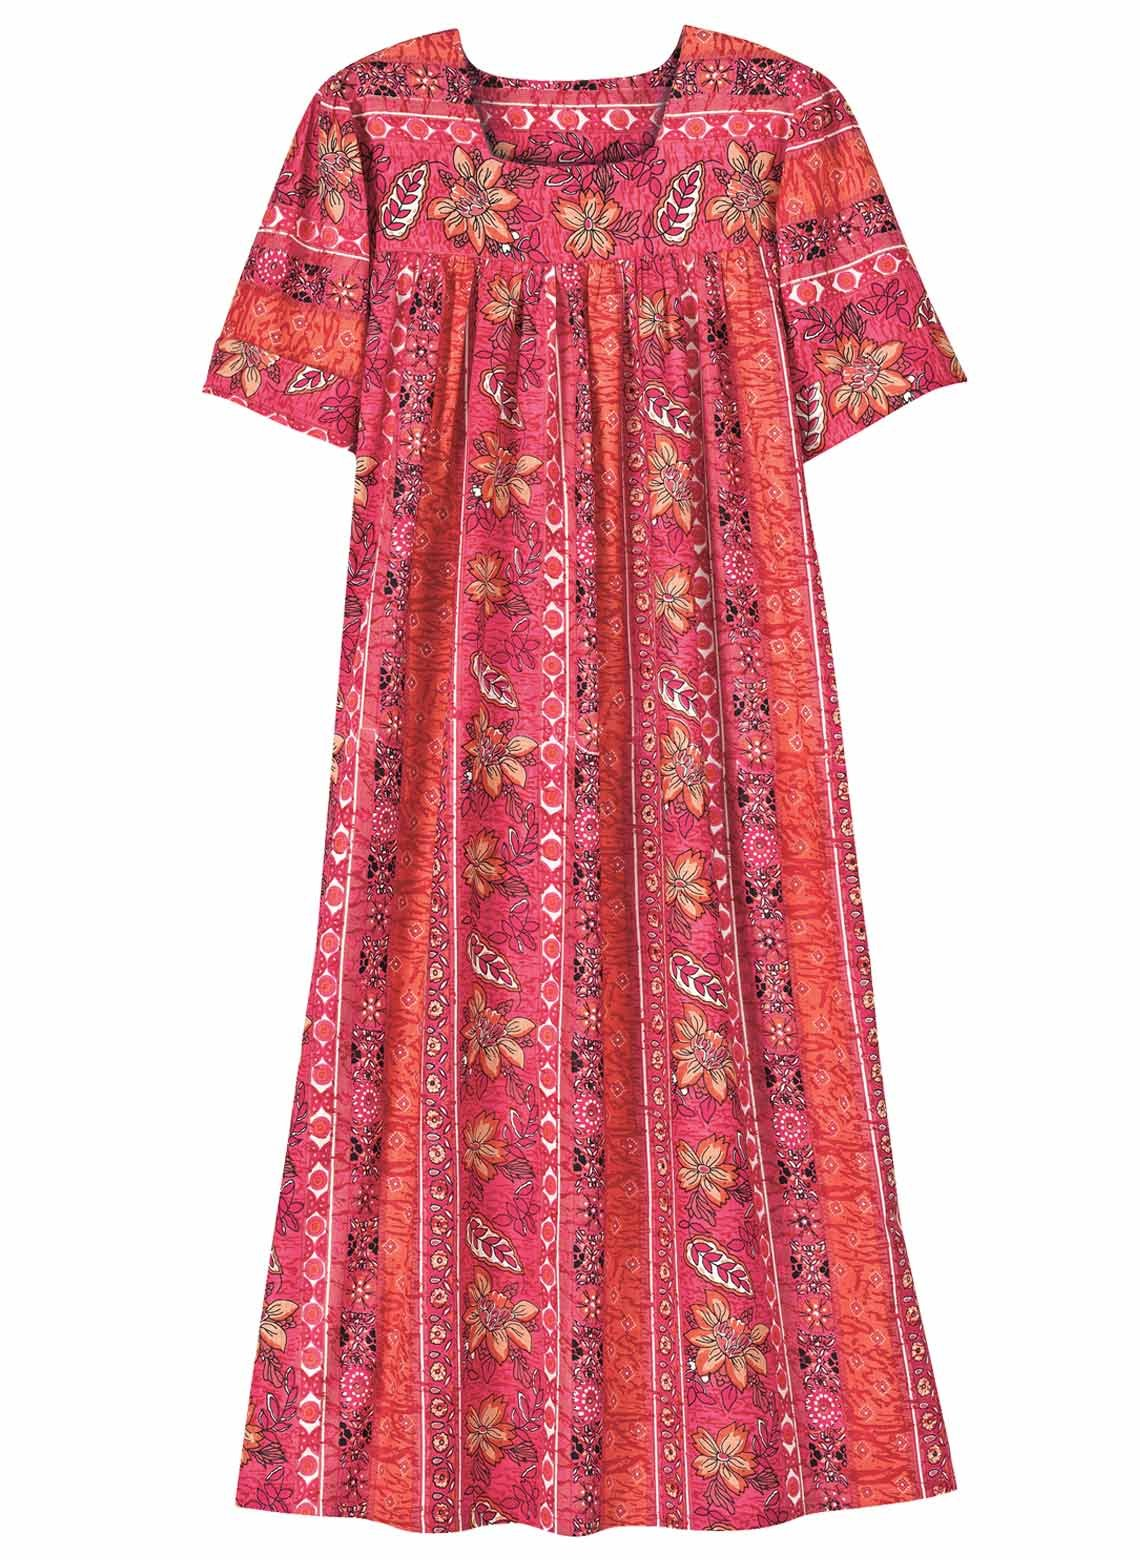 Carol Wright Gifts Flattering Batik Dress, Pink, Size Extra Large (3X)